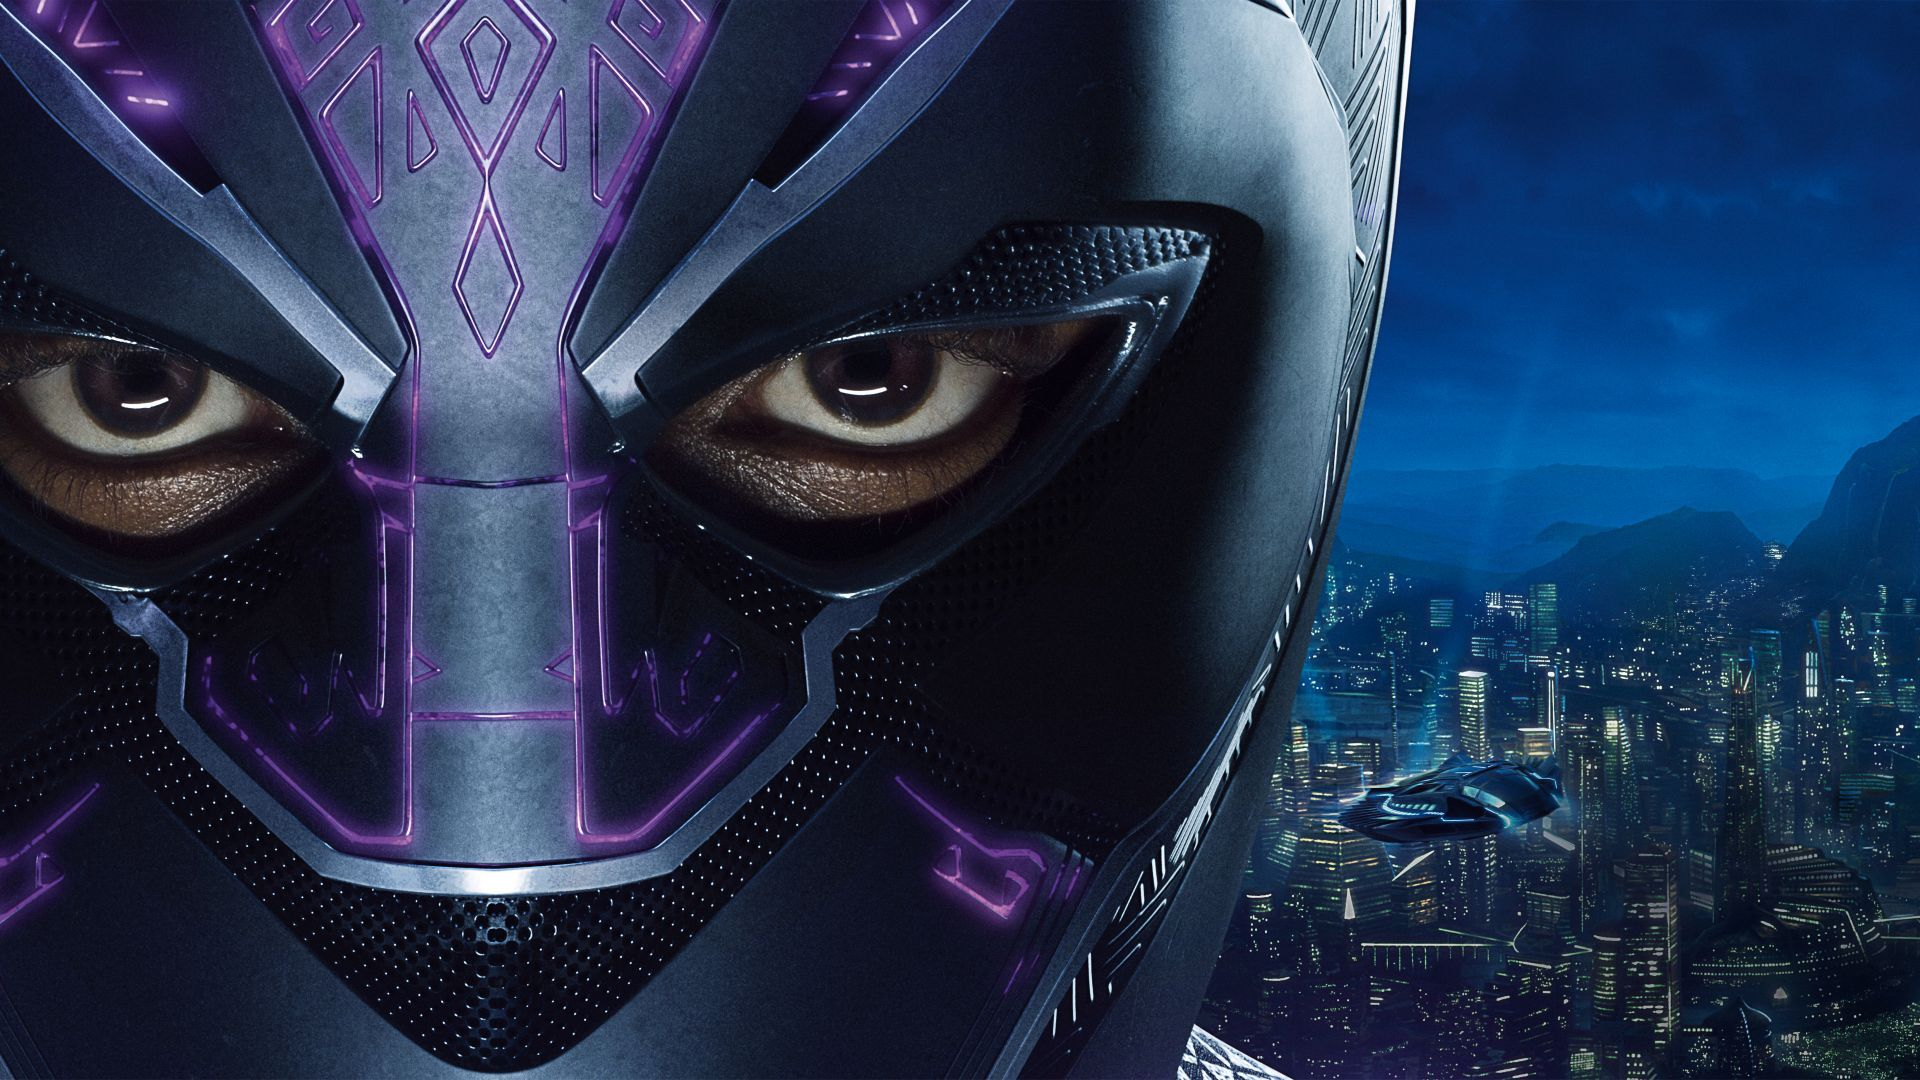 Download Wallpapers Of Black Panther 4k 8k Movies 12199 Available In Hd 4k Resolutions For De Black Panther Art Black Panther Hd Wallpaper Black Panther